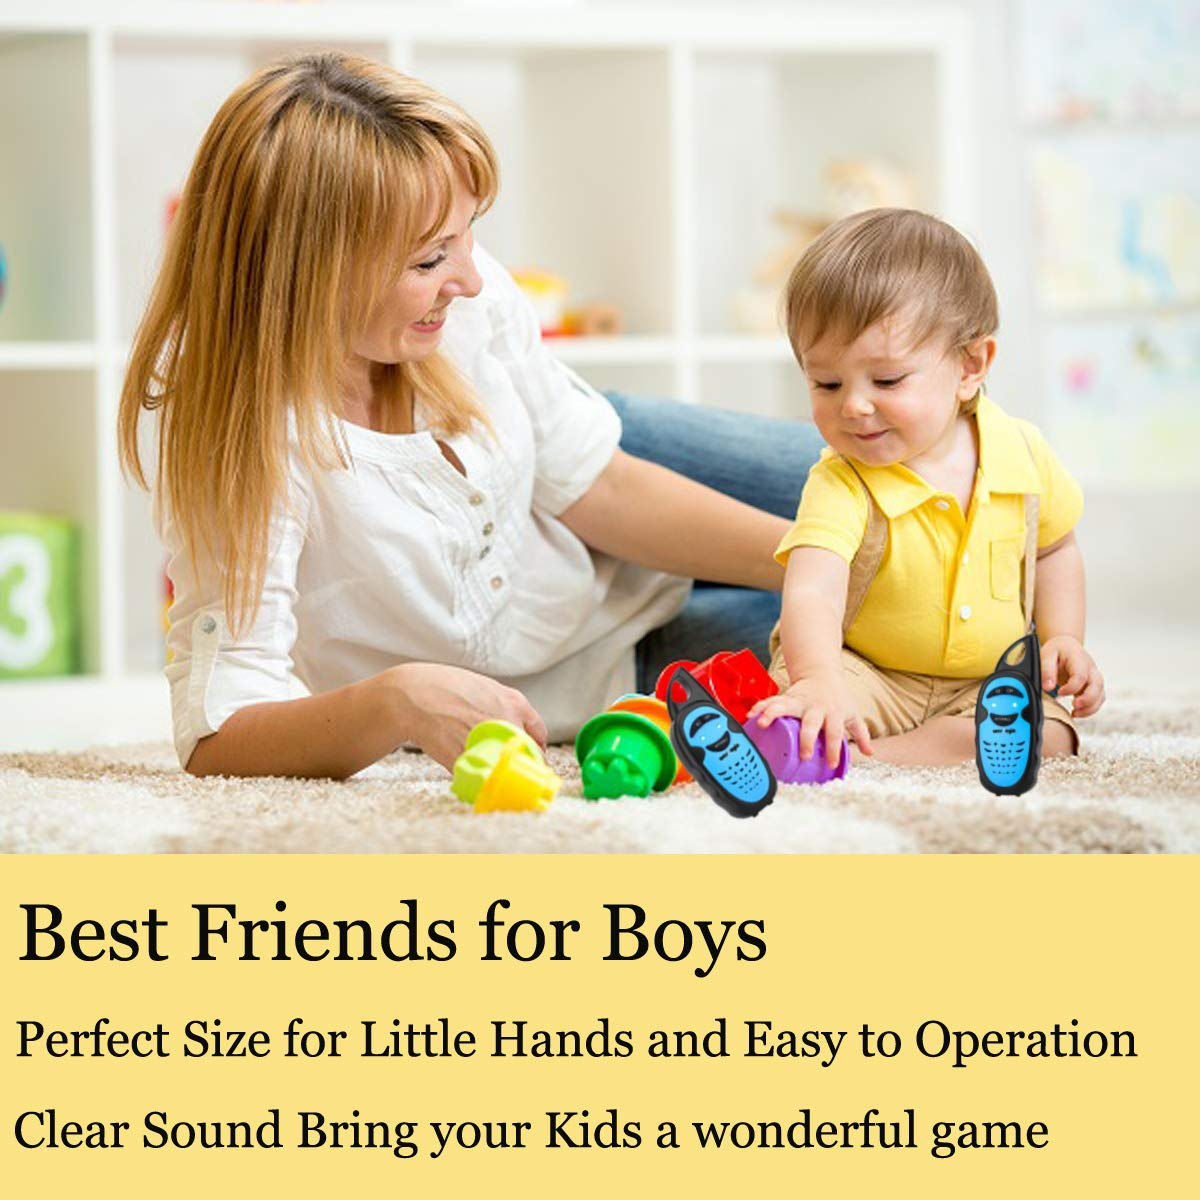 WES TAYIN Upgraded Walkie Talkies for Kids, Up to 2-Mile and 3 Channels Easy to Use Walkie Talkies for Toddlers, Toy Walkie Talkies for Little Hands Boys Gifts by WES TAYIN (Image #4)